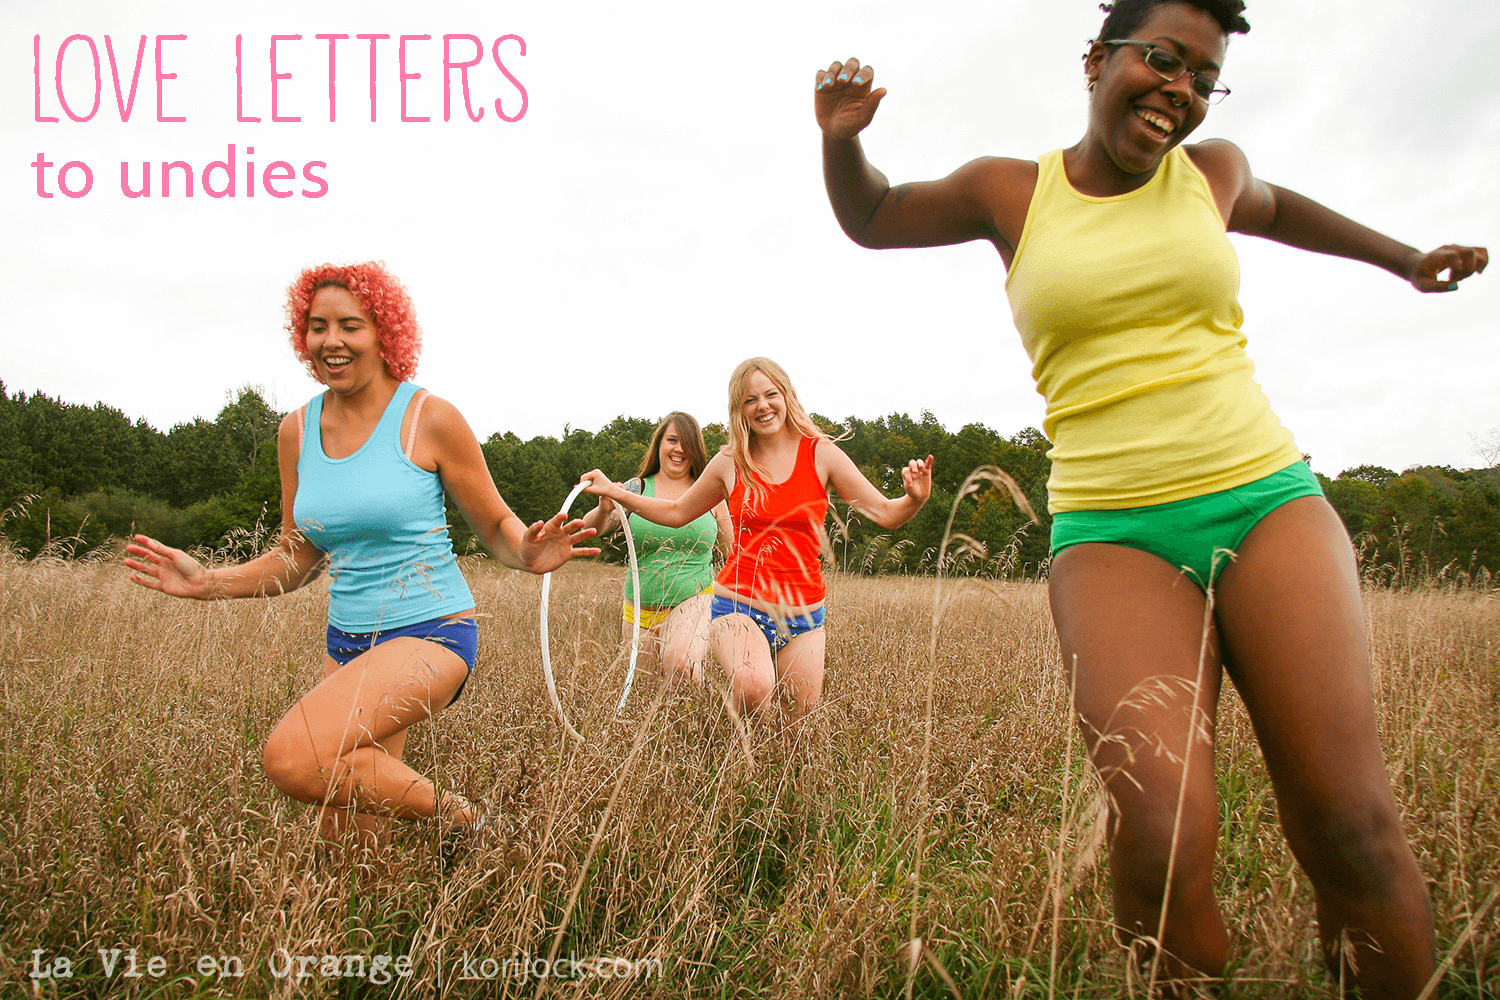 Love letters to underwear [4 undies clad girls running in a field] | La Vie en Orange